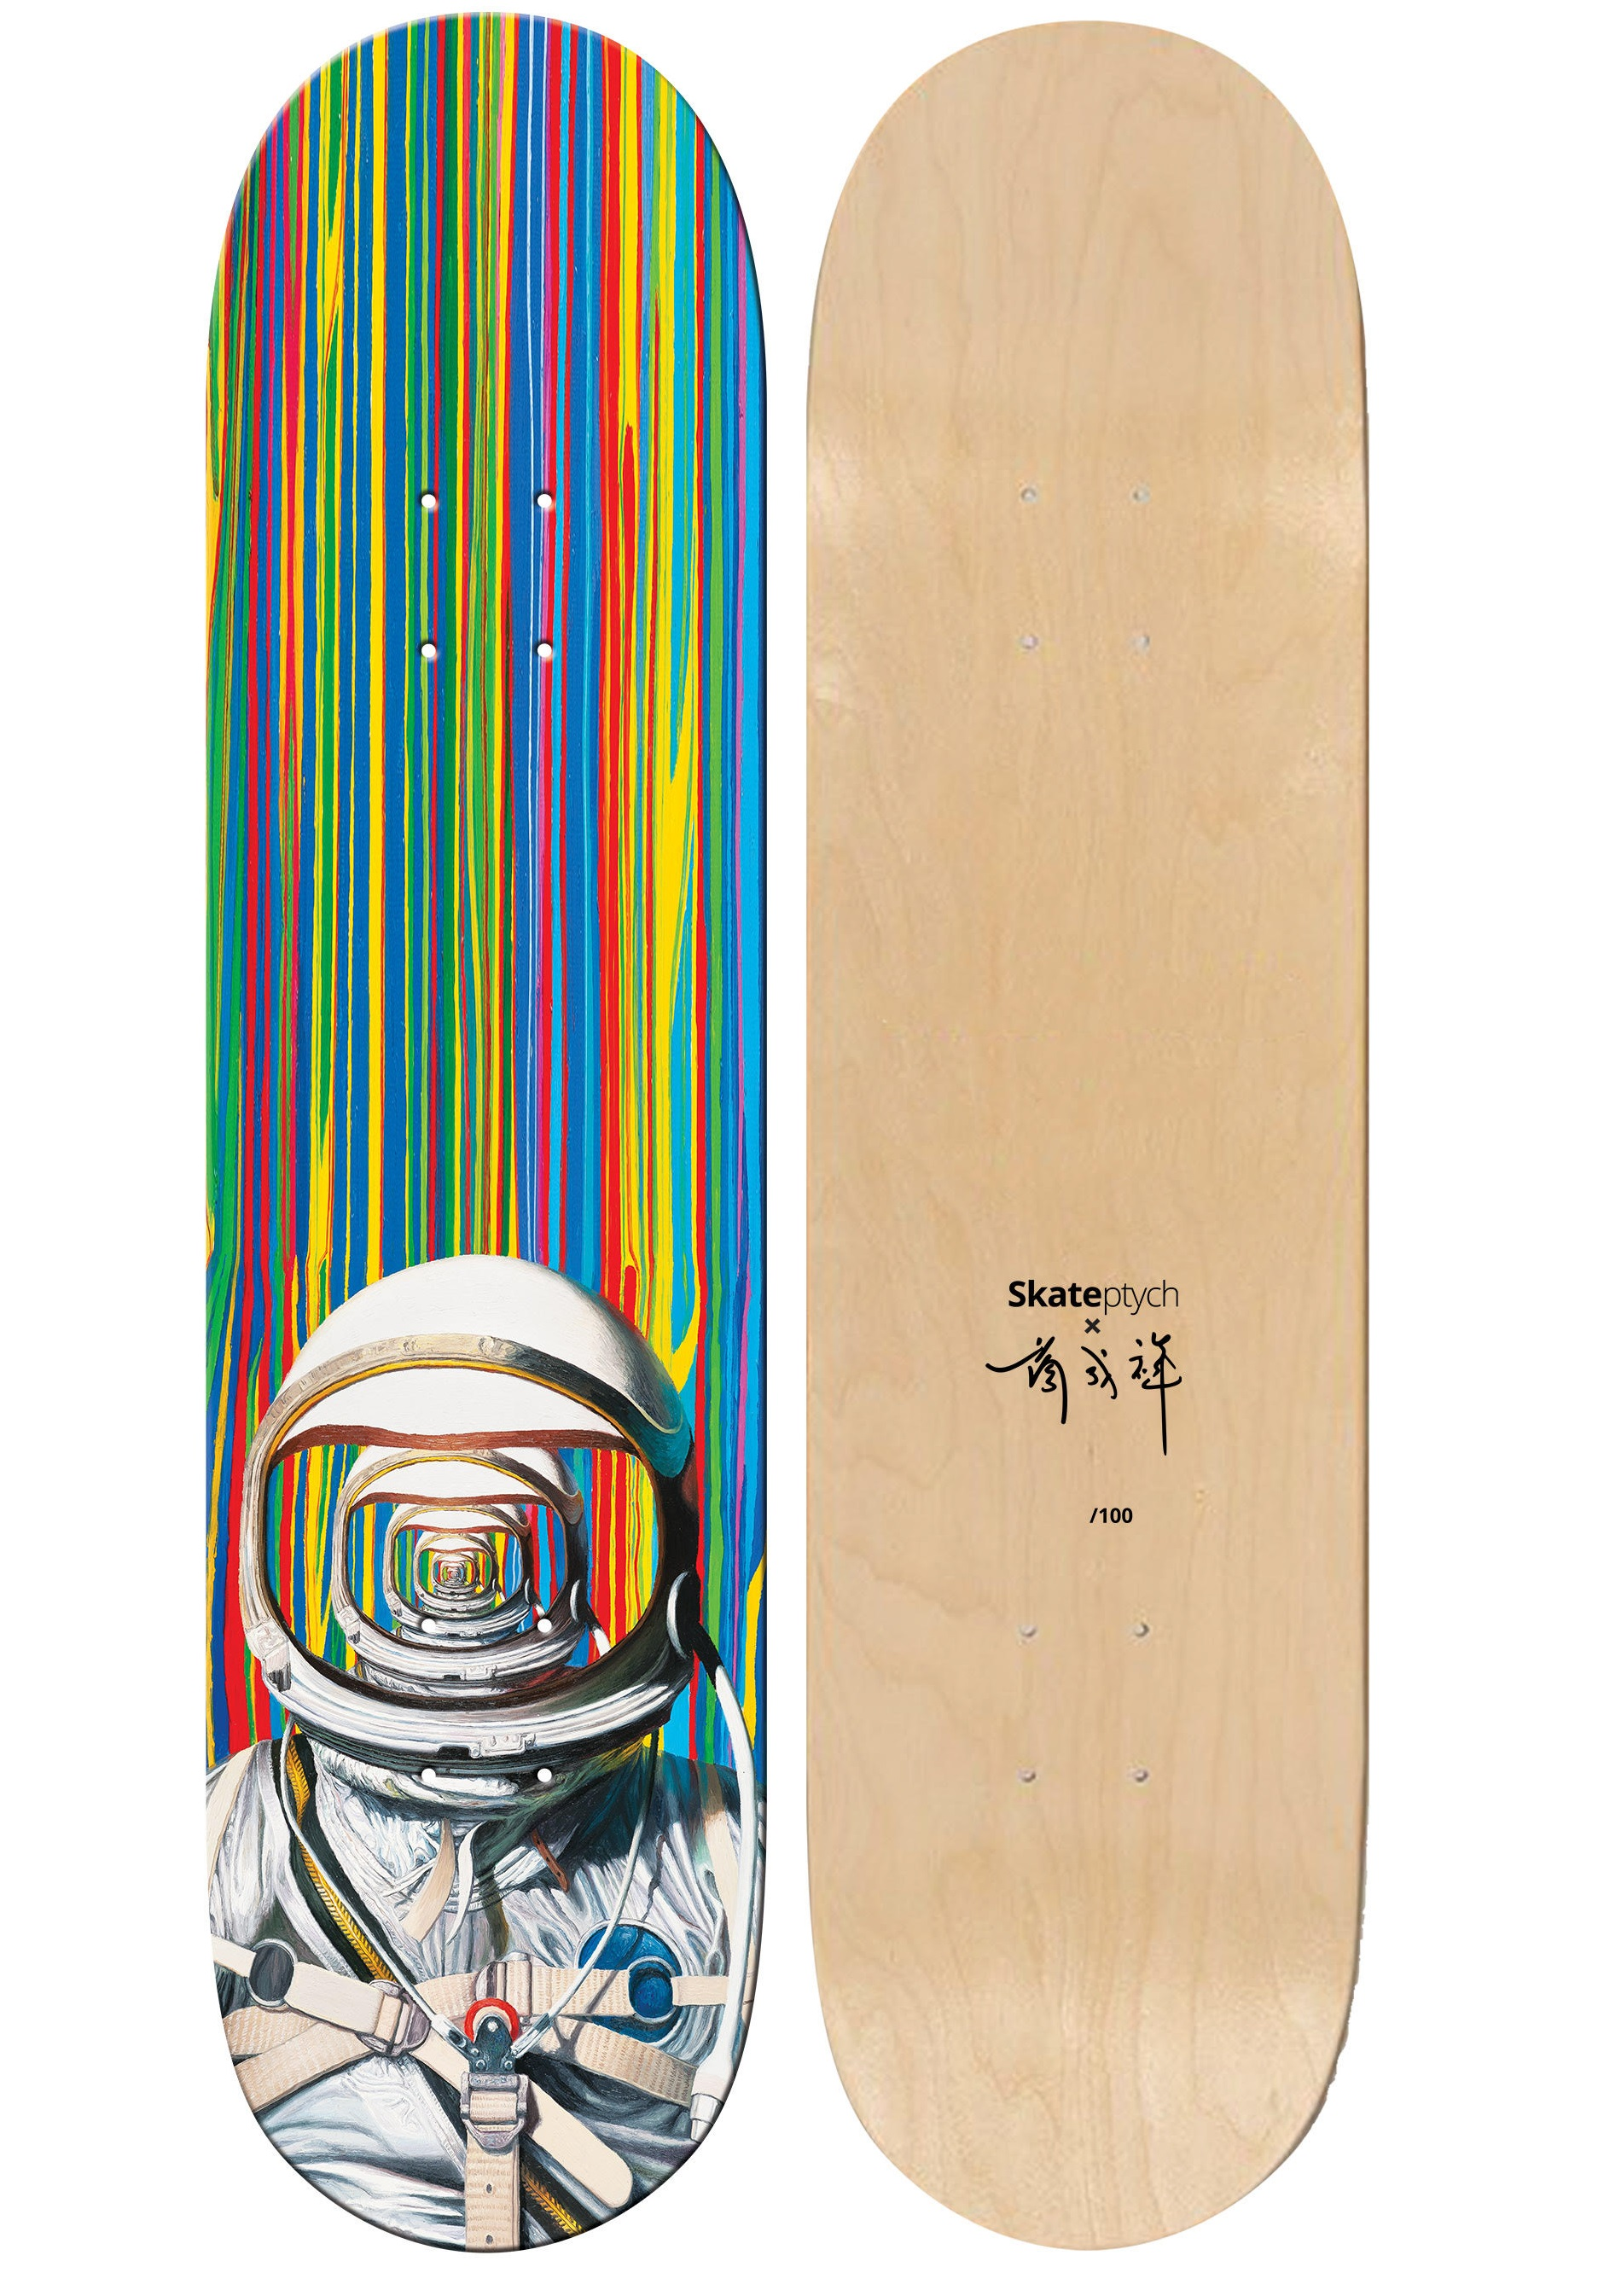 New art skateboard decks from Skateptych | 411posters